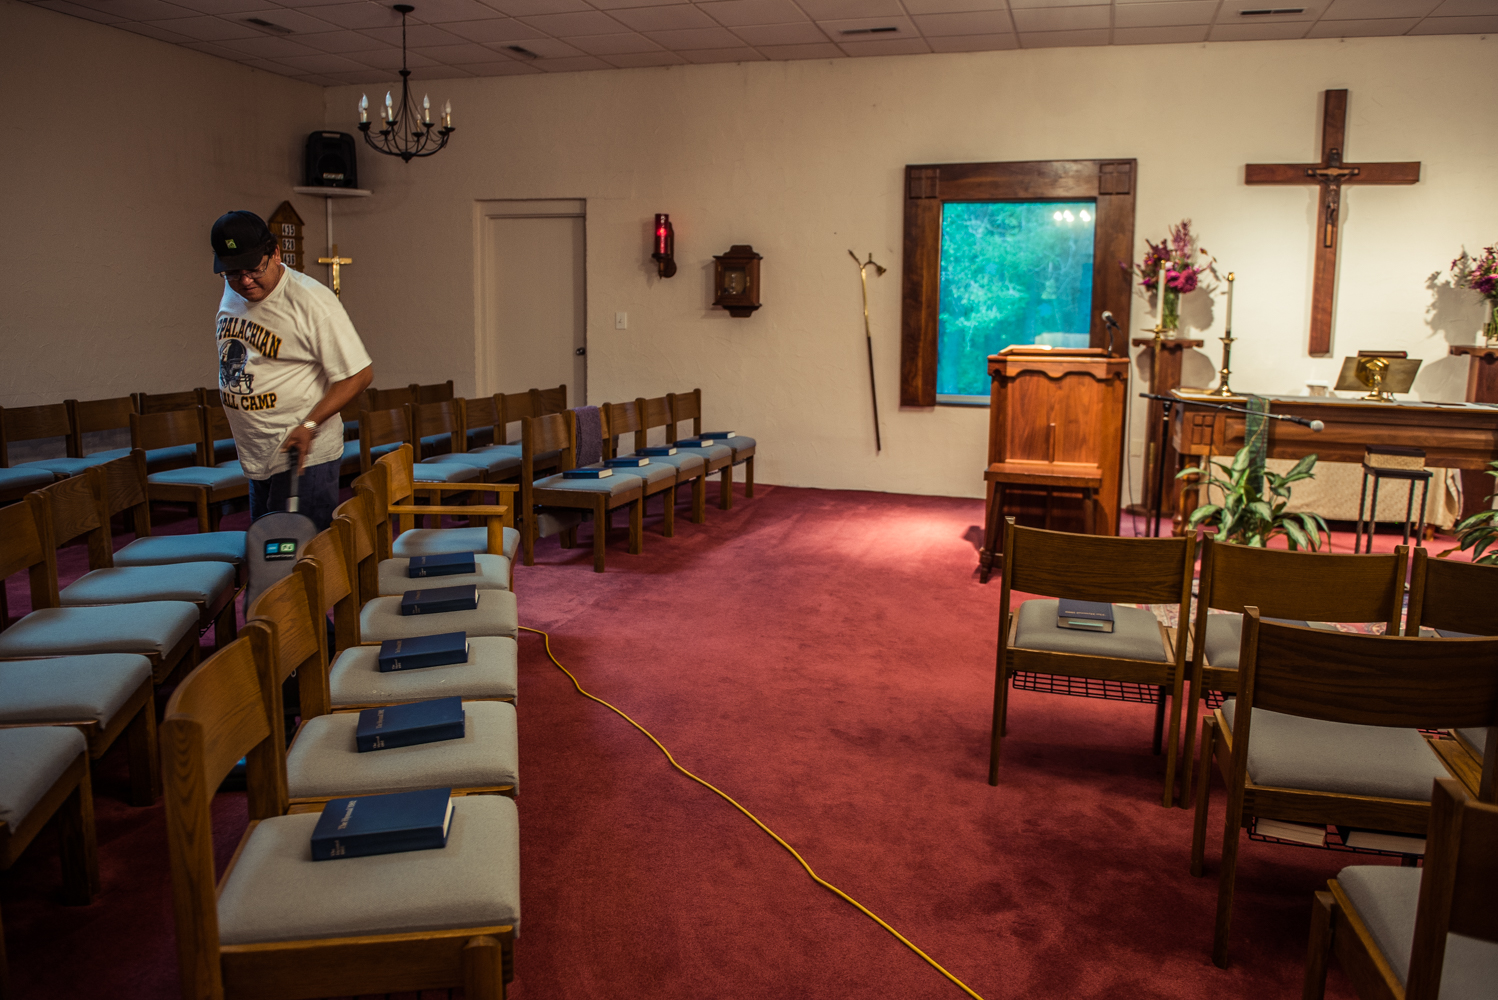 Greensboro, North Carolina, 2018Juana's husband vacuums on a Saturday evening  They help to ready the church for Sunday mass every week.